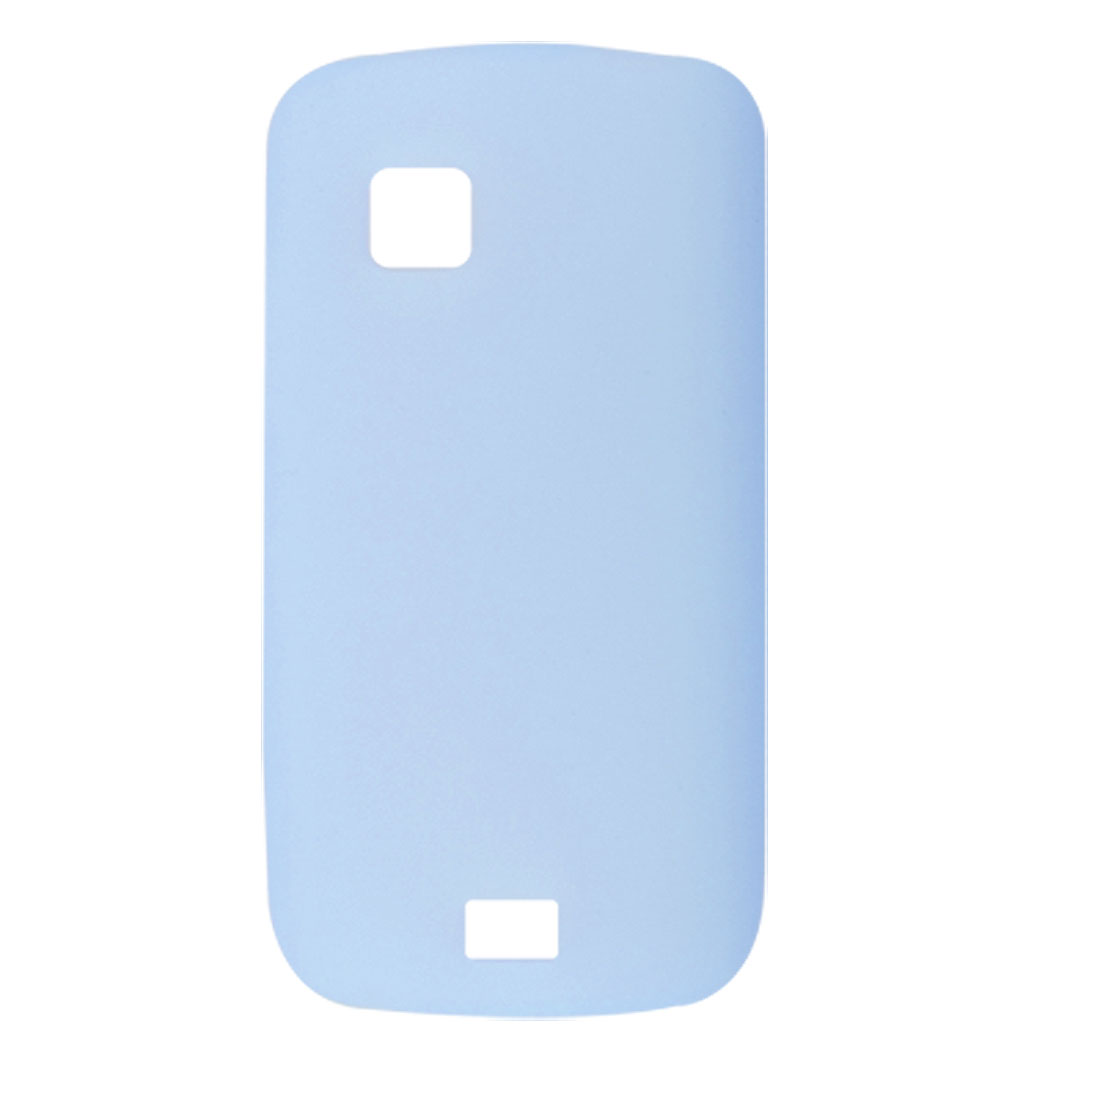 Light Blue Silicone Skin Smooth Case Shell for Nokia C5-03